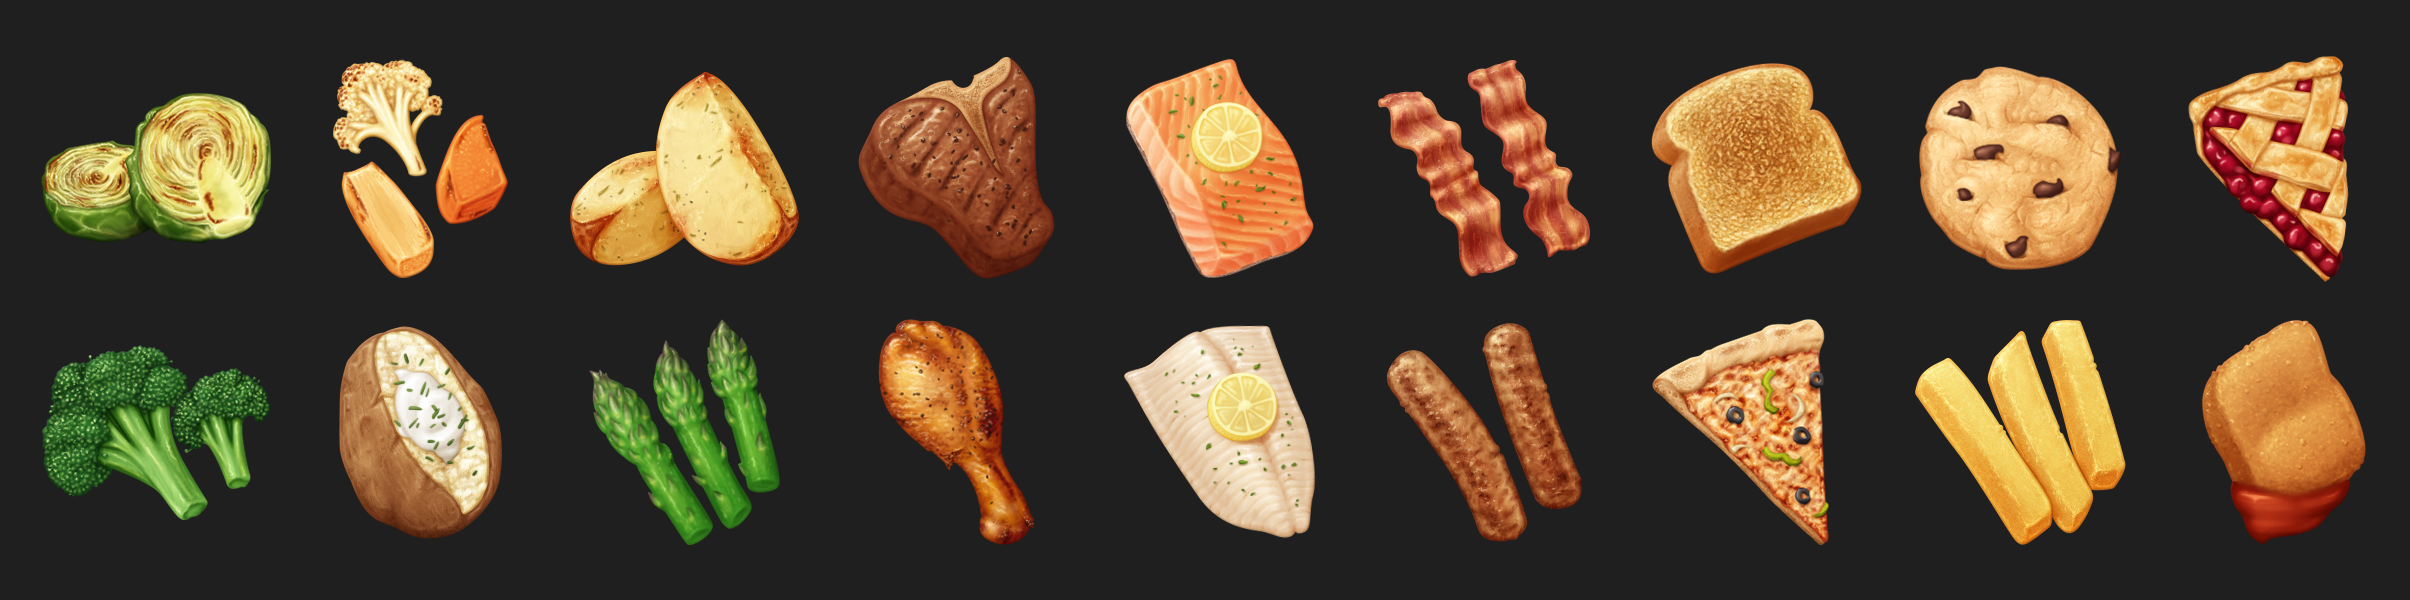 Detailed food category illustrations.